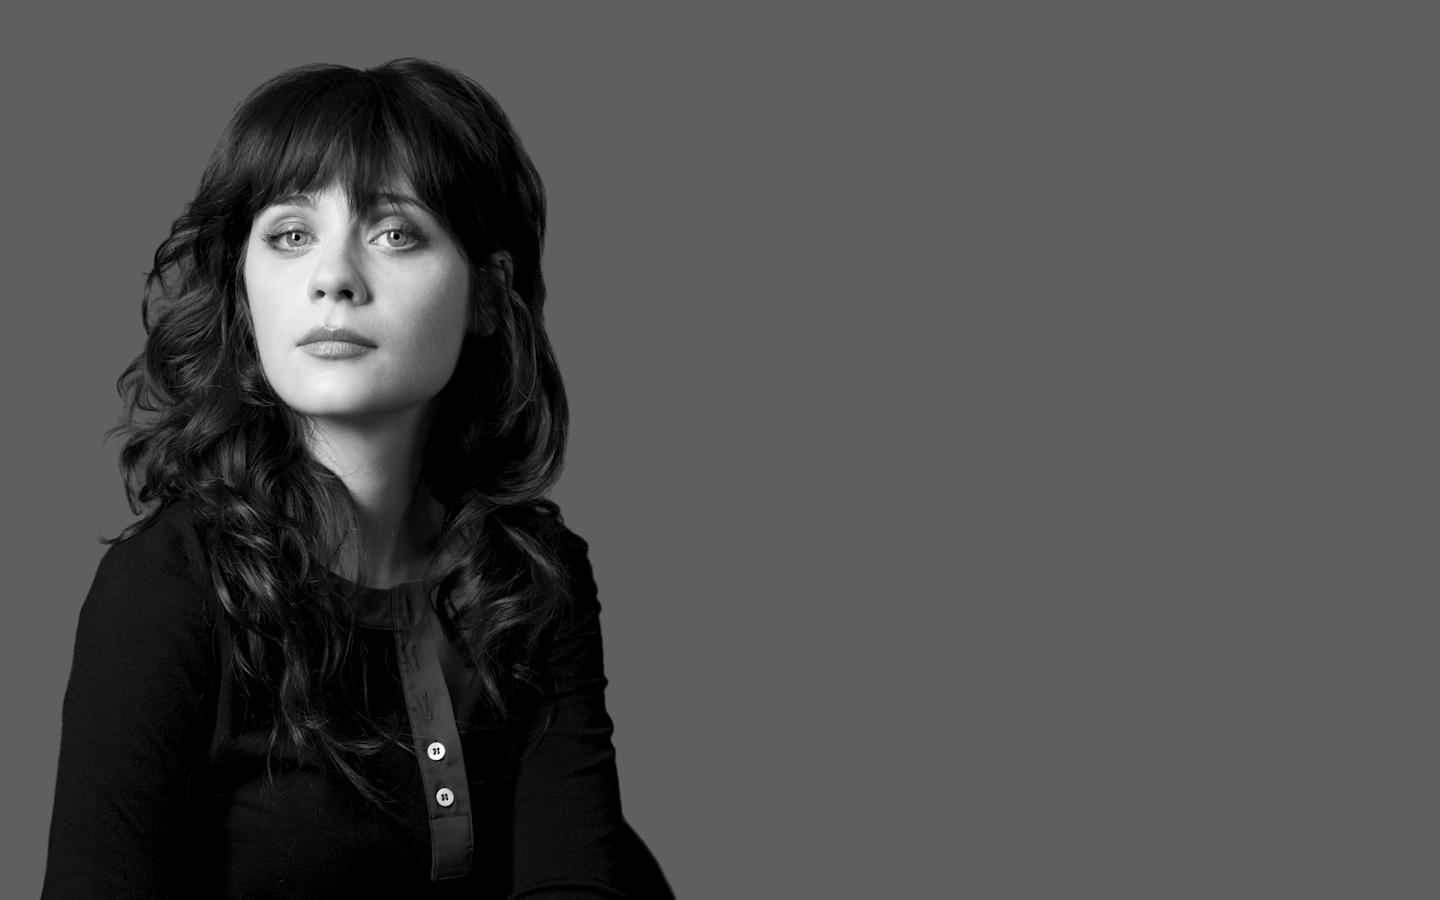 Zooey Deschanel Wallpaper and Background Image | 1440x900 | ID ...